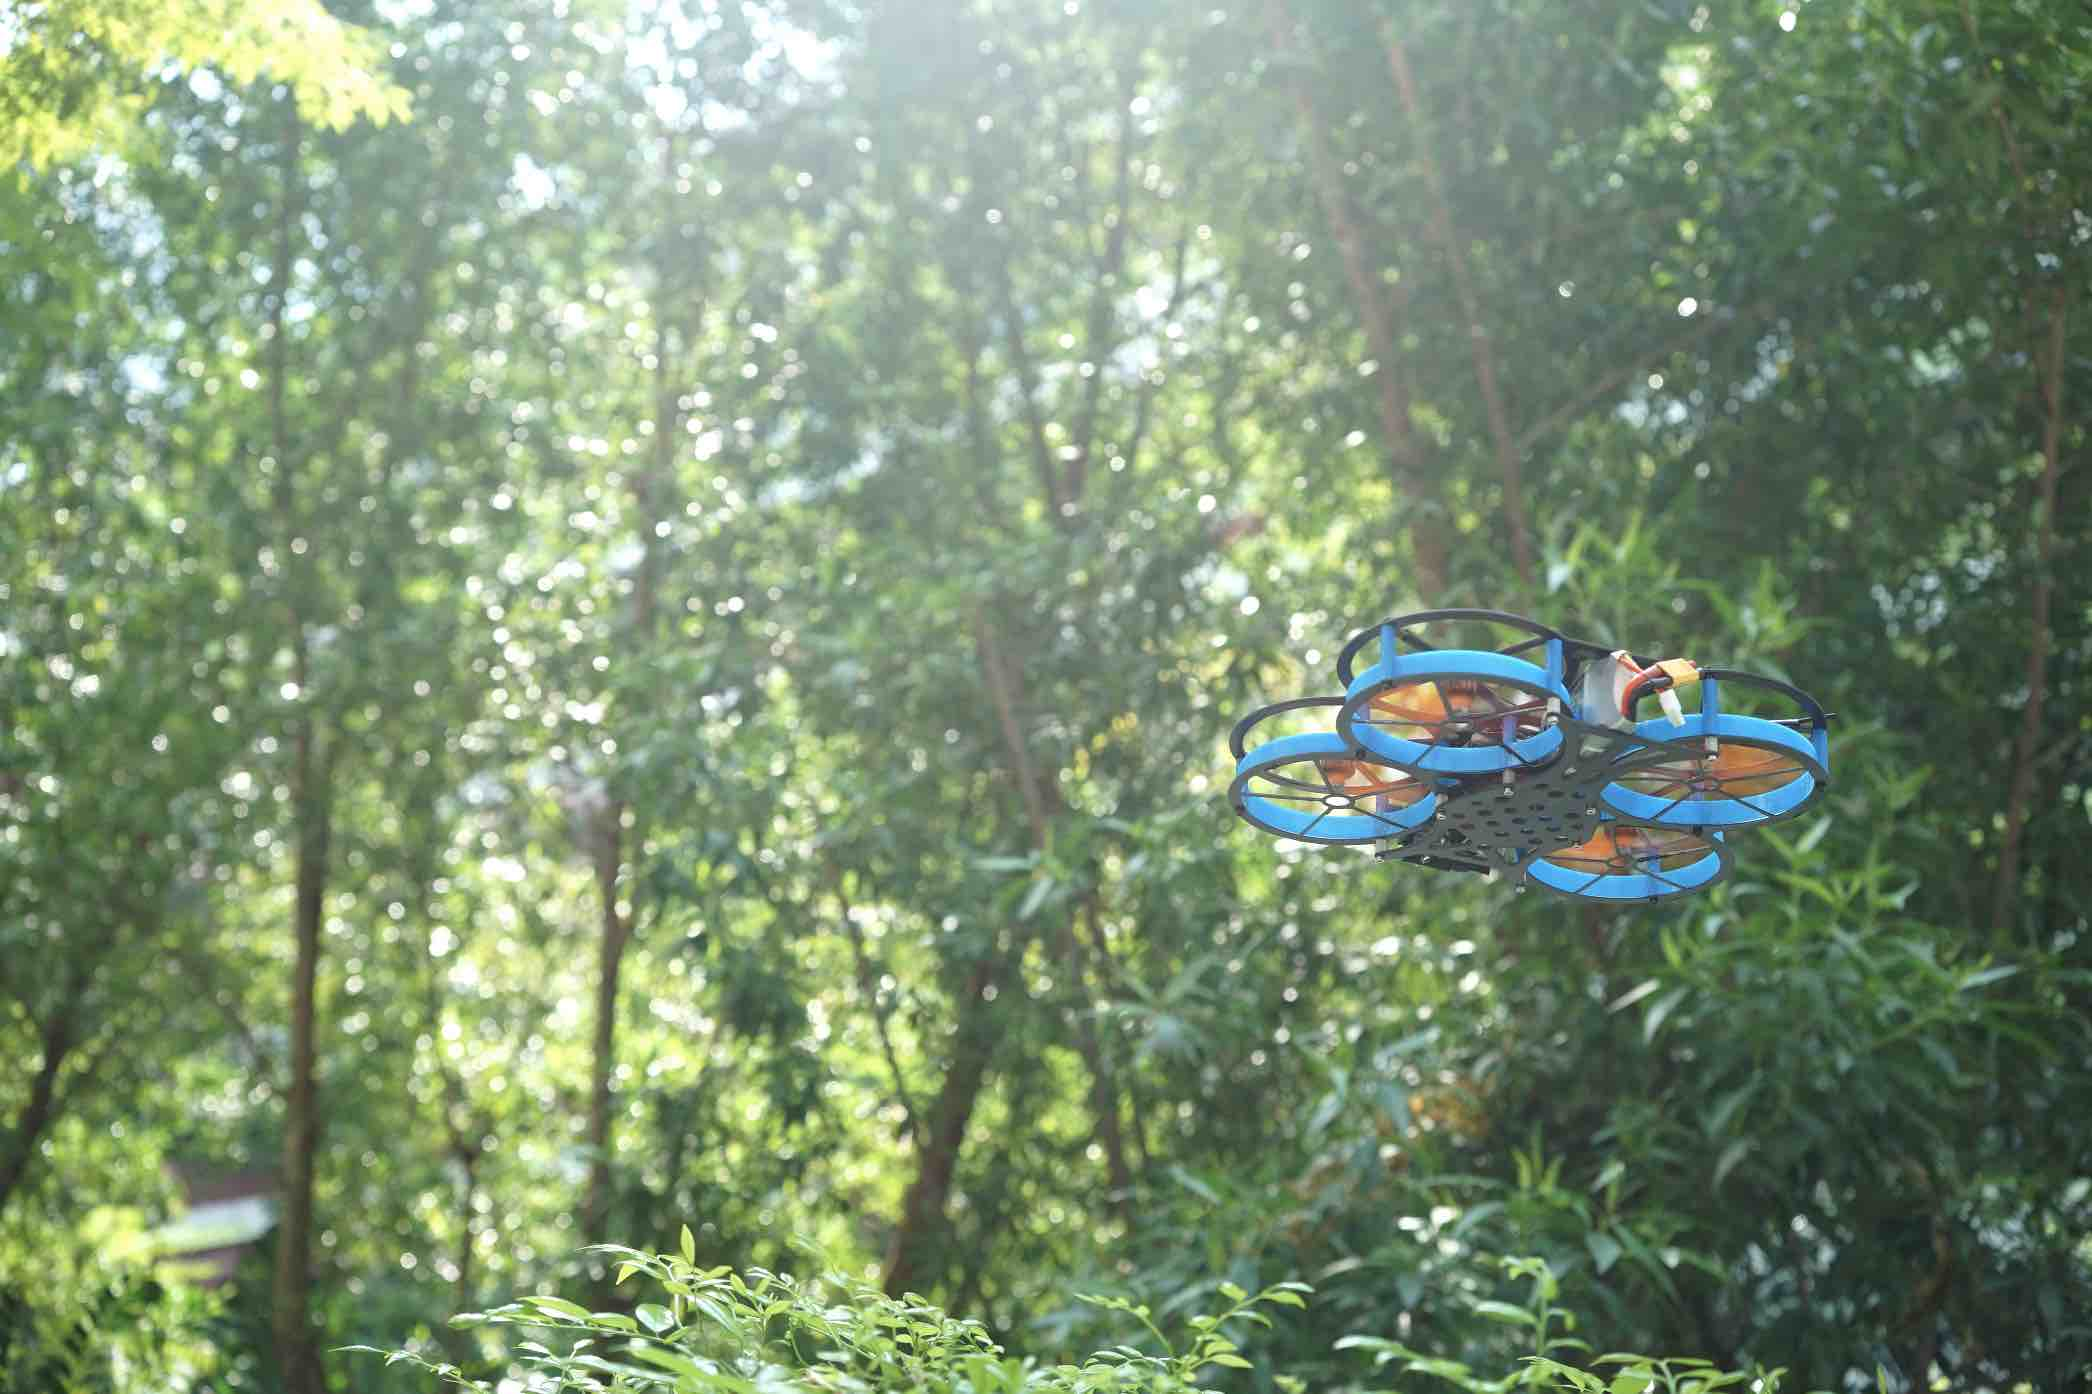 TIM: Tree Inspection Microdrone